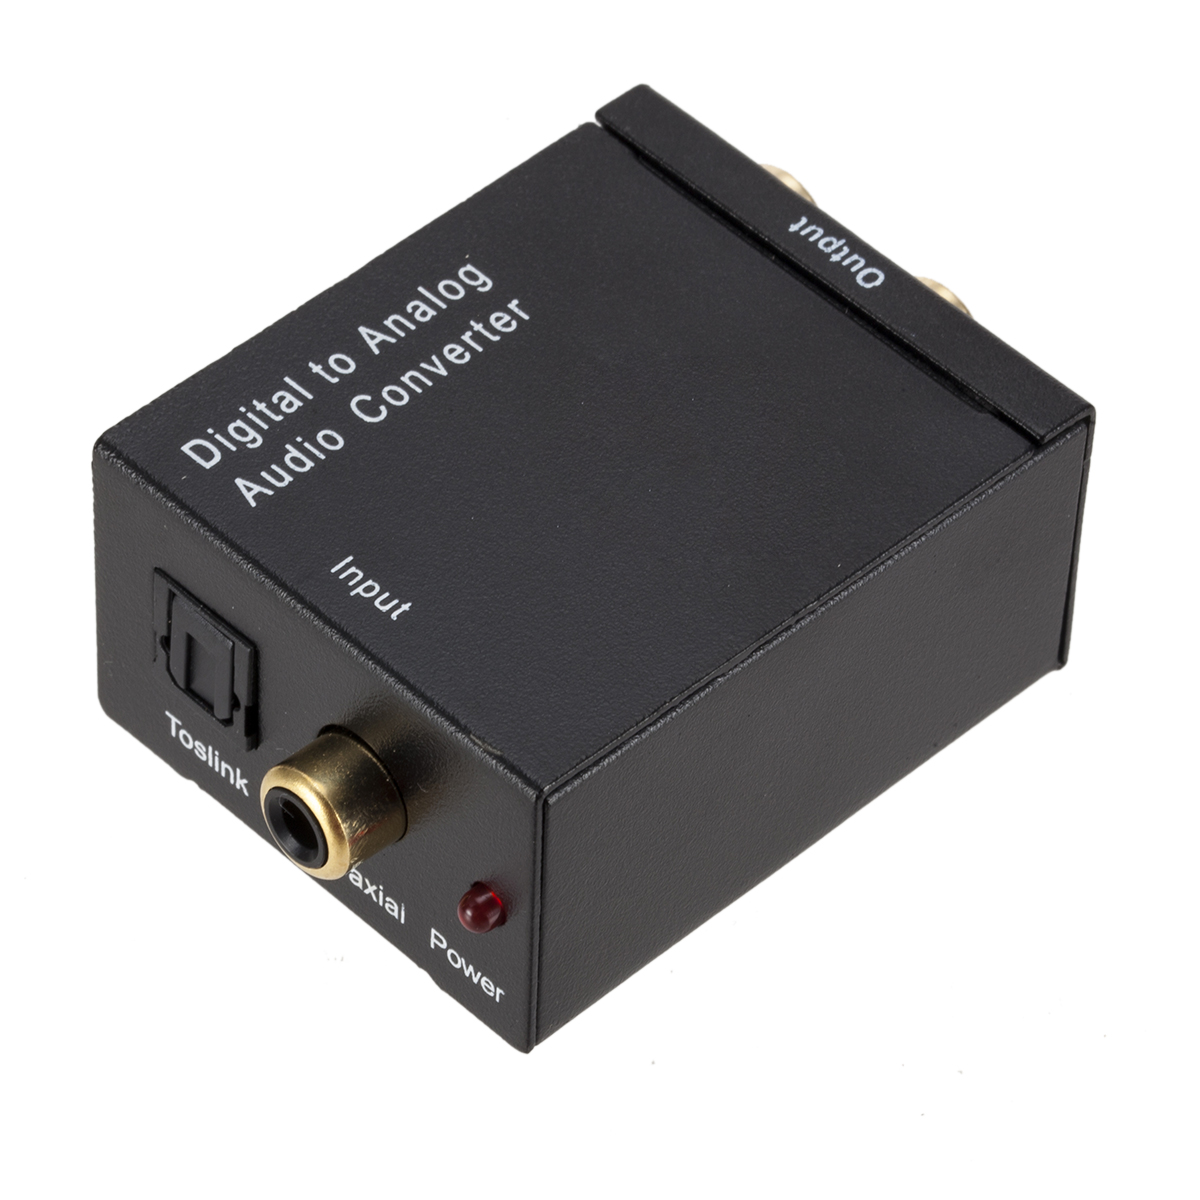 Digital Optical Membujuk Koaksial Toslink untuk Analog RCA L/R Audio Converter